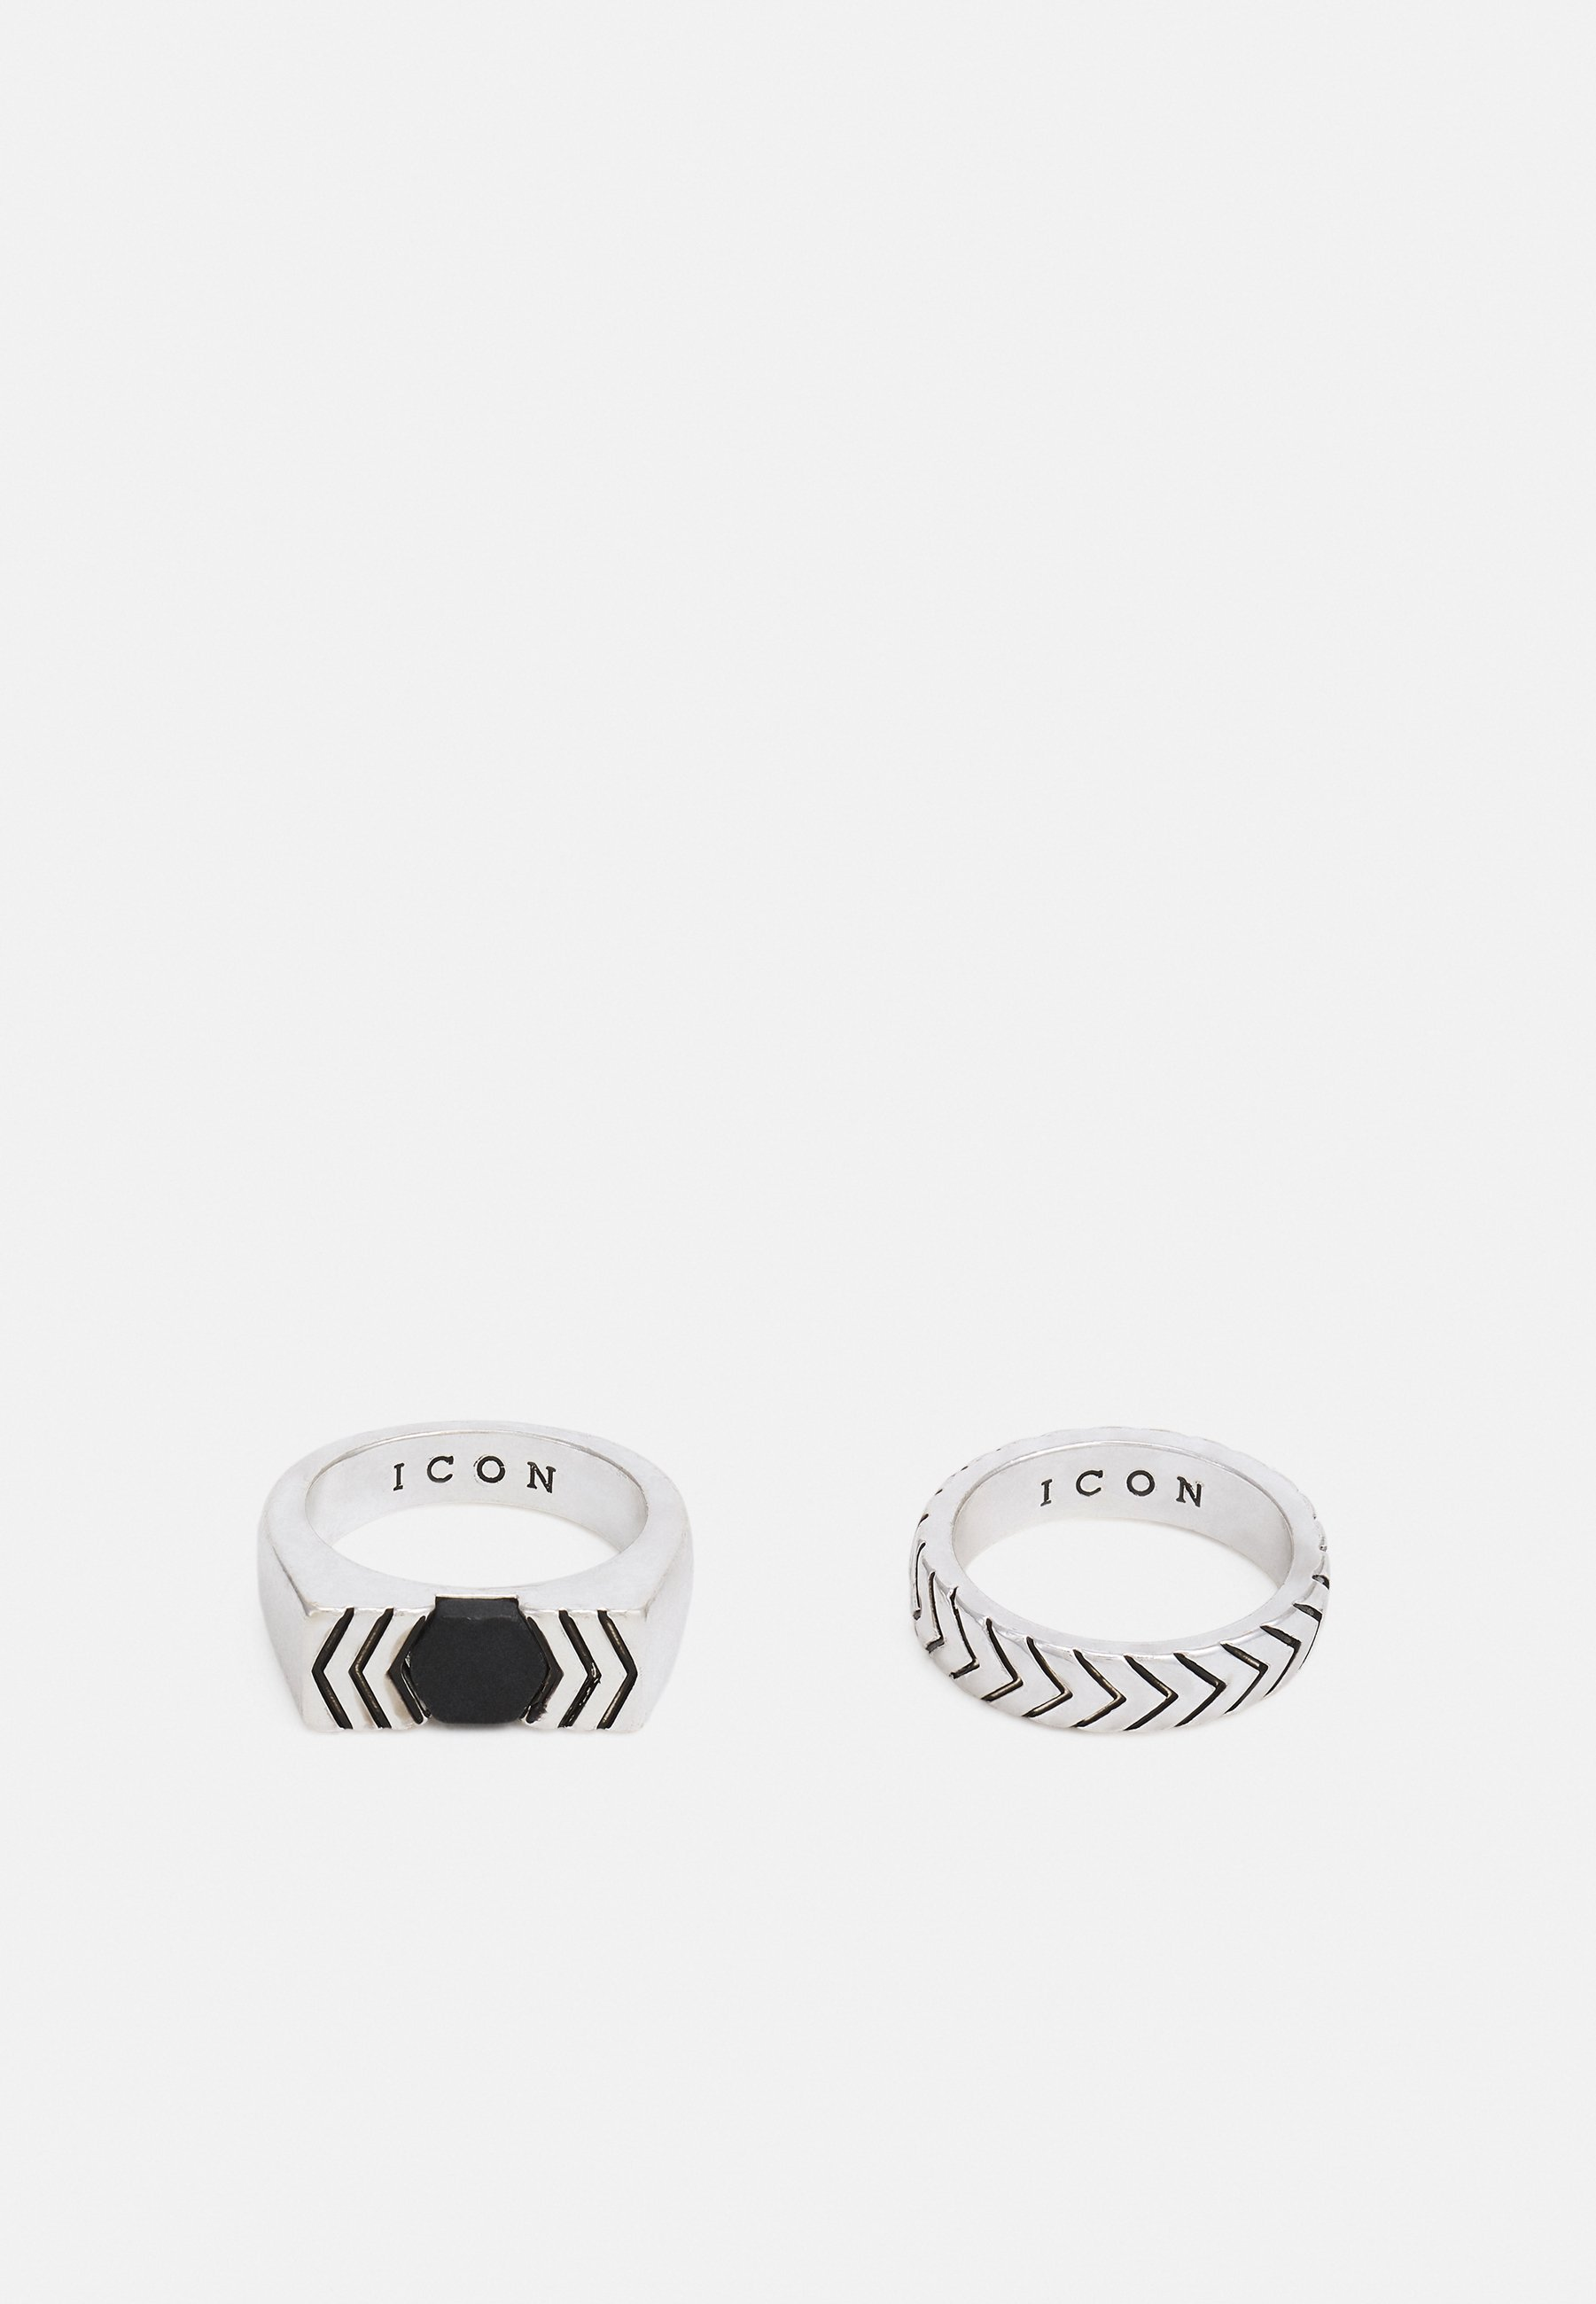 Homme COLLECTIVE CONSCIENCE COMPOSITE 2 PACK - Bague